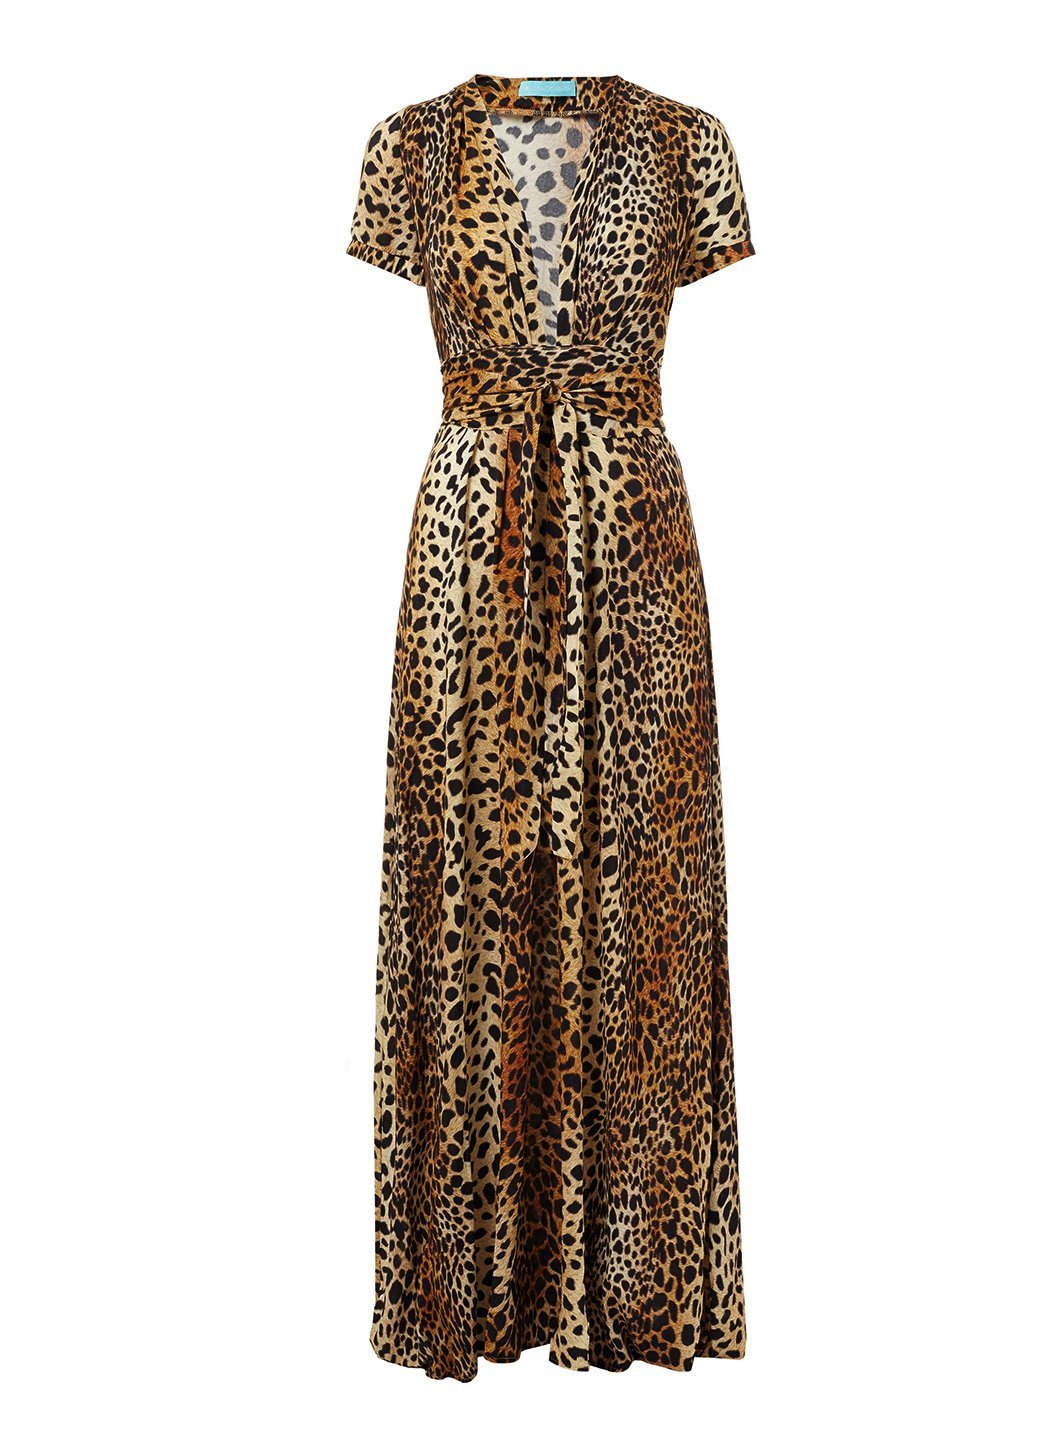 lou cheetah vneck belted maxi dress 2019